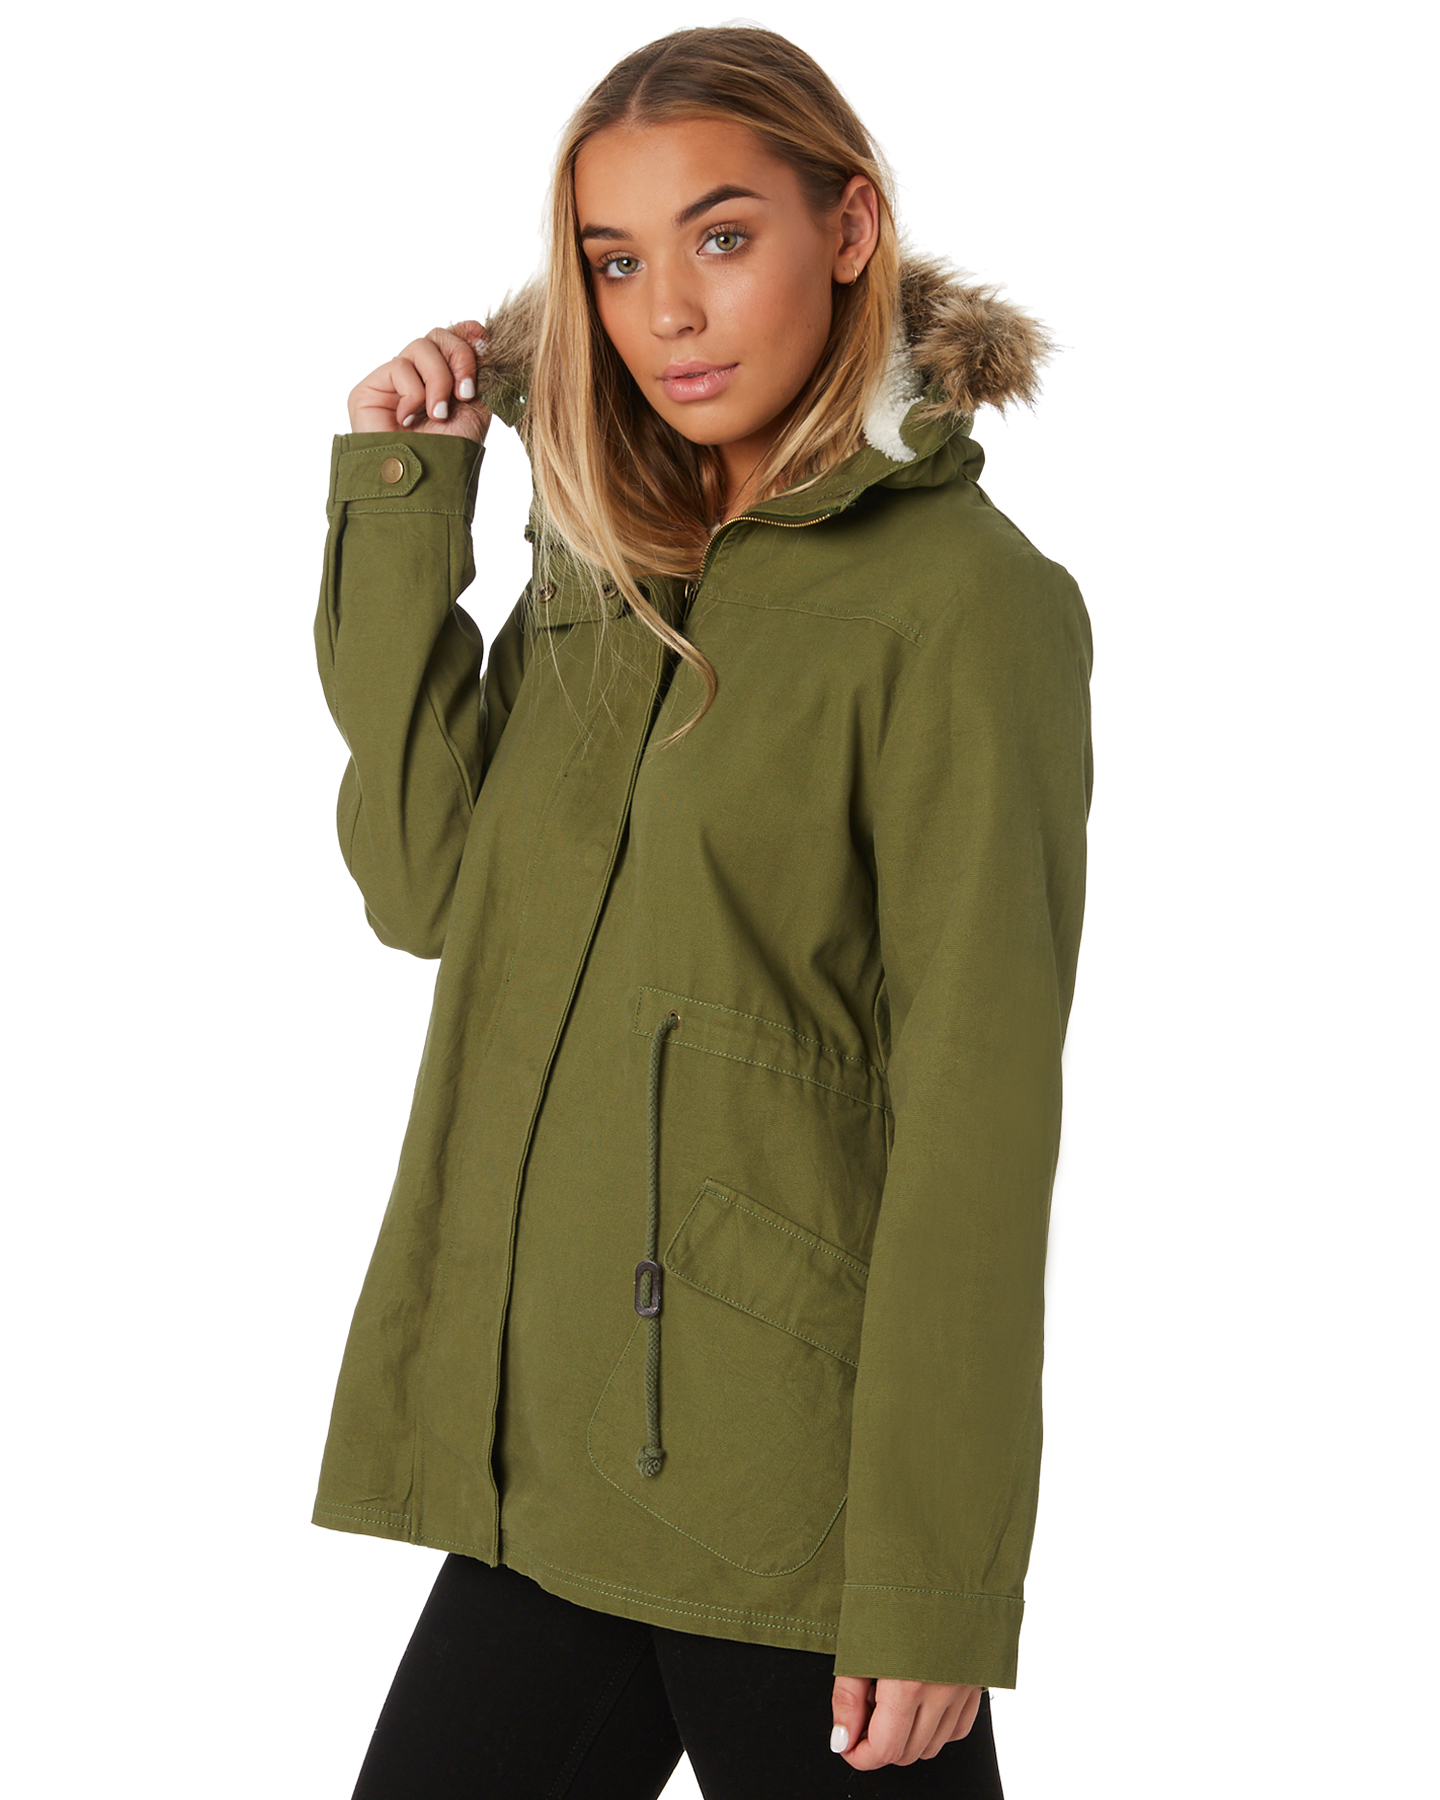 New-Swell-Women-039-s-Fleur-Hooded-Anorak-Cotton-Canvas-Grey thumbnail 12